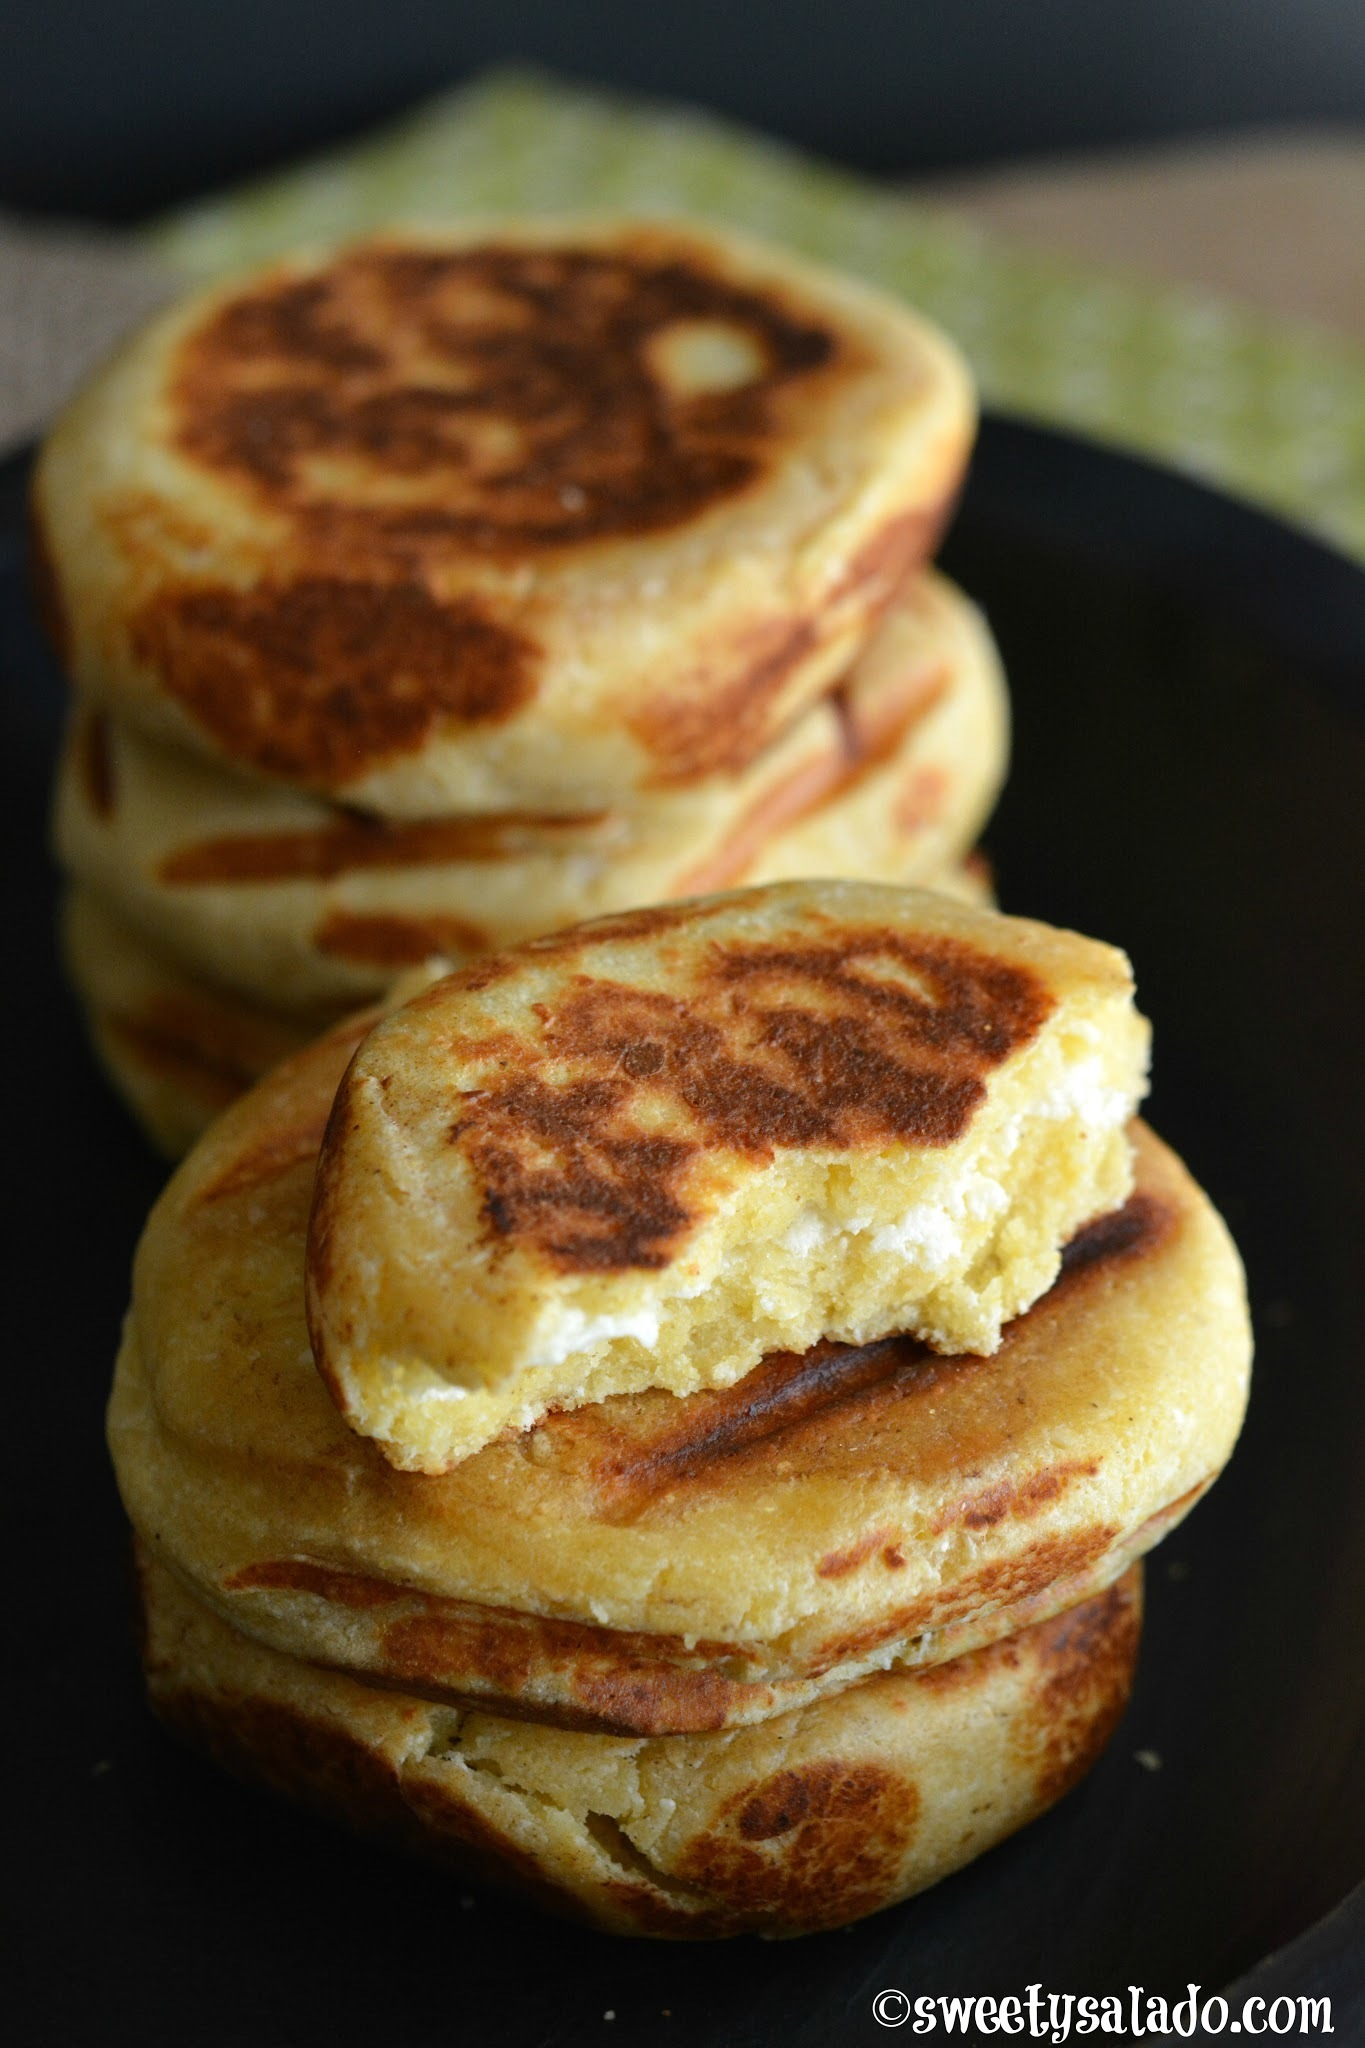 Arepas Boyacenses (Made With Flour & Cheese)